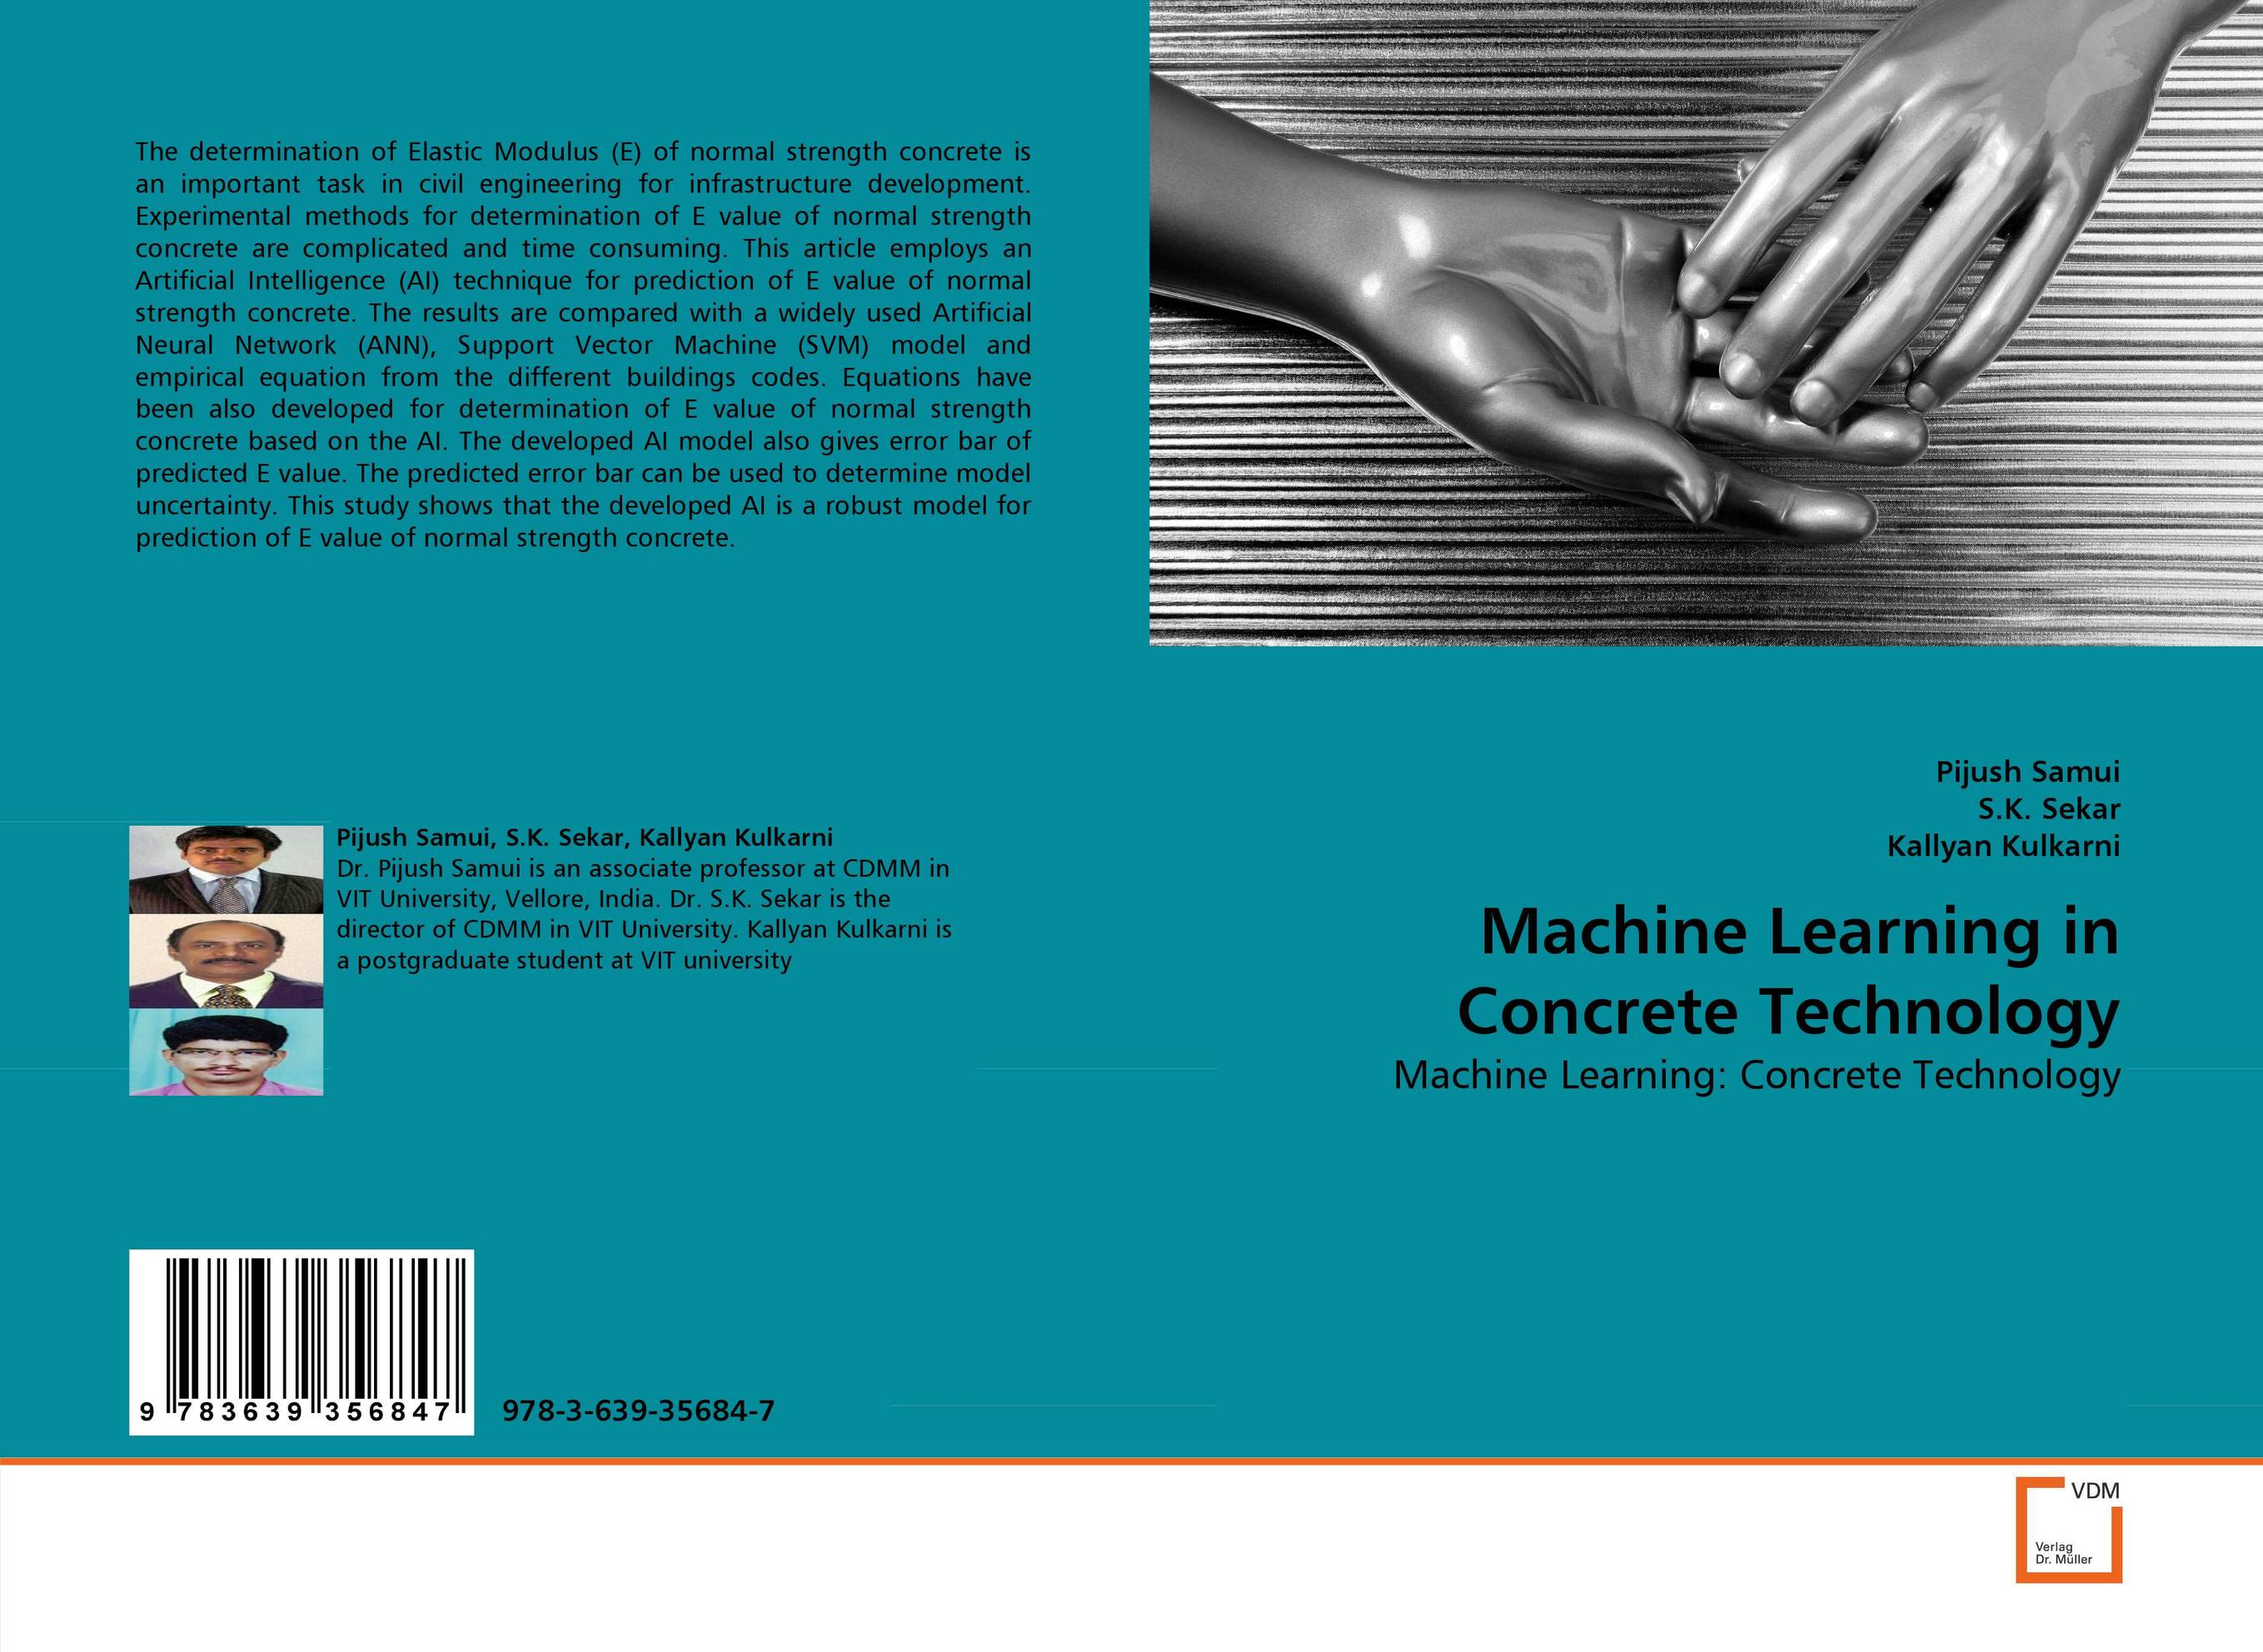 Machine Learning in Concrete Technology 1 100 age 2 normal mg up to the basic type of assembly model for assembly model